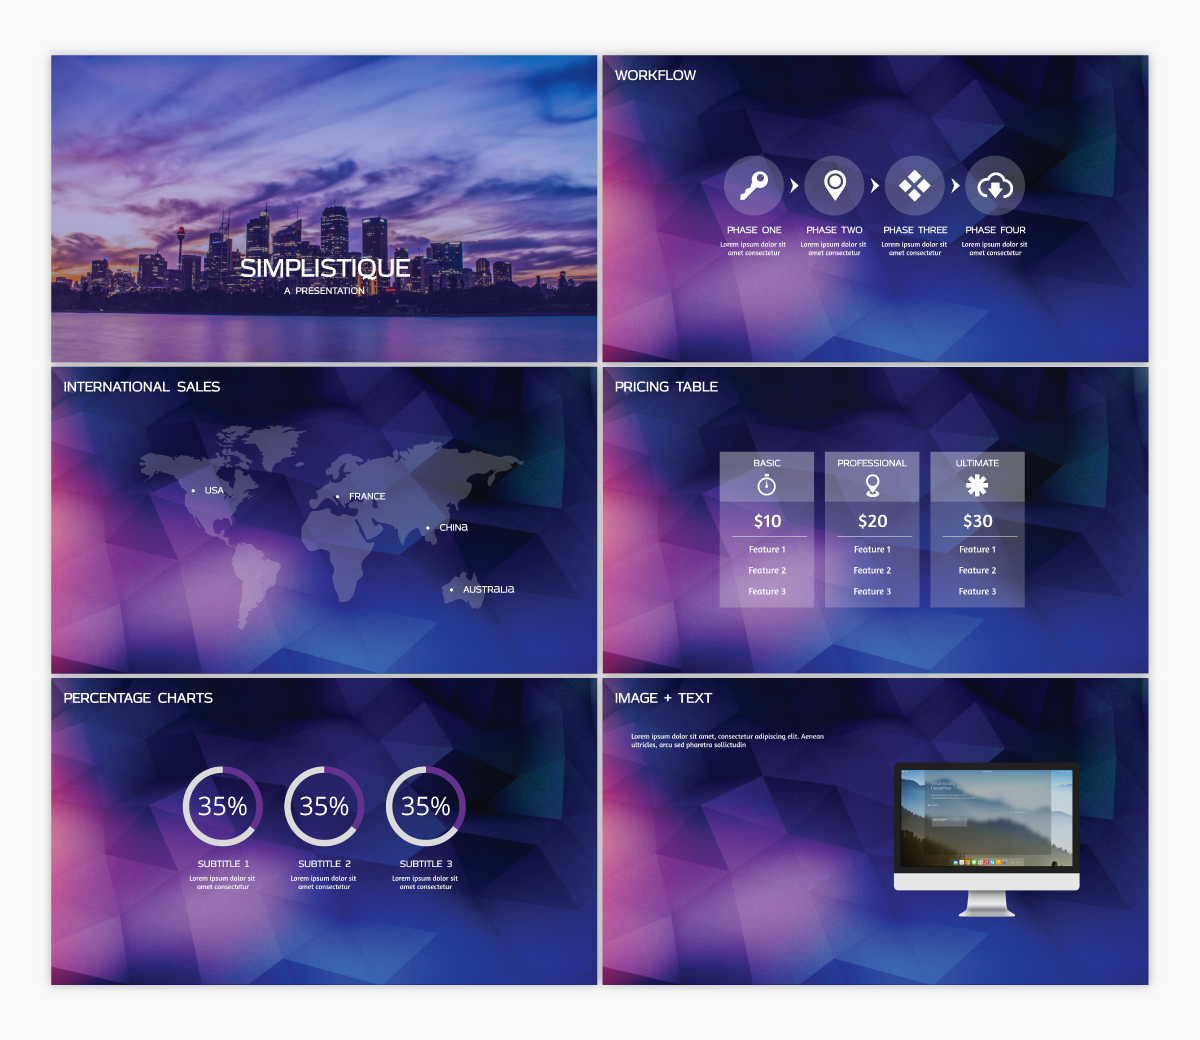 A blue and purple keynote template available to customize in Visme.